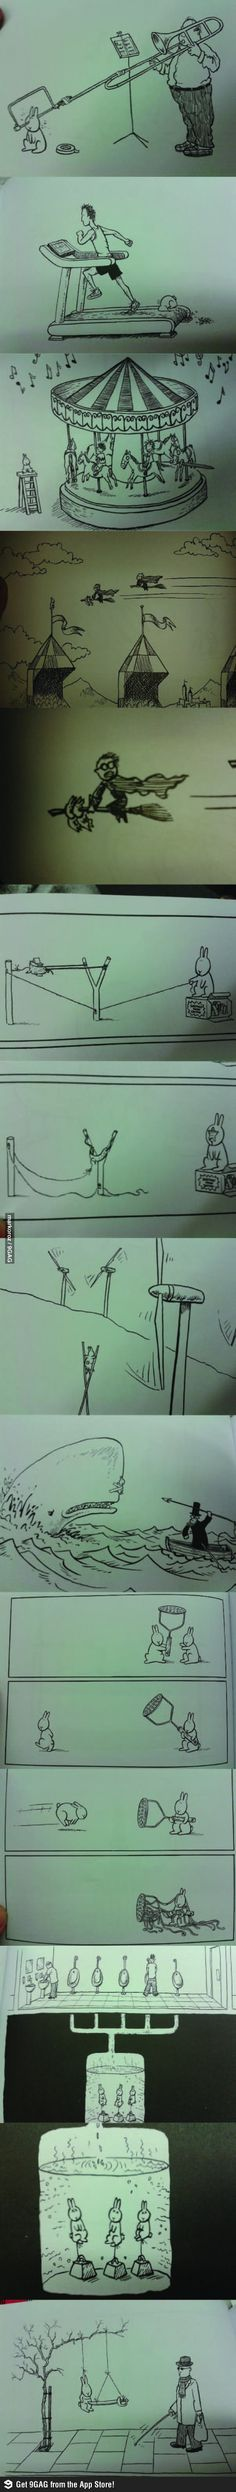 Dawn of the suicidal bunni http://vaingloriouspixel.com/funny-cartoons/what-i-found-in-the-kidds-section/